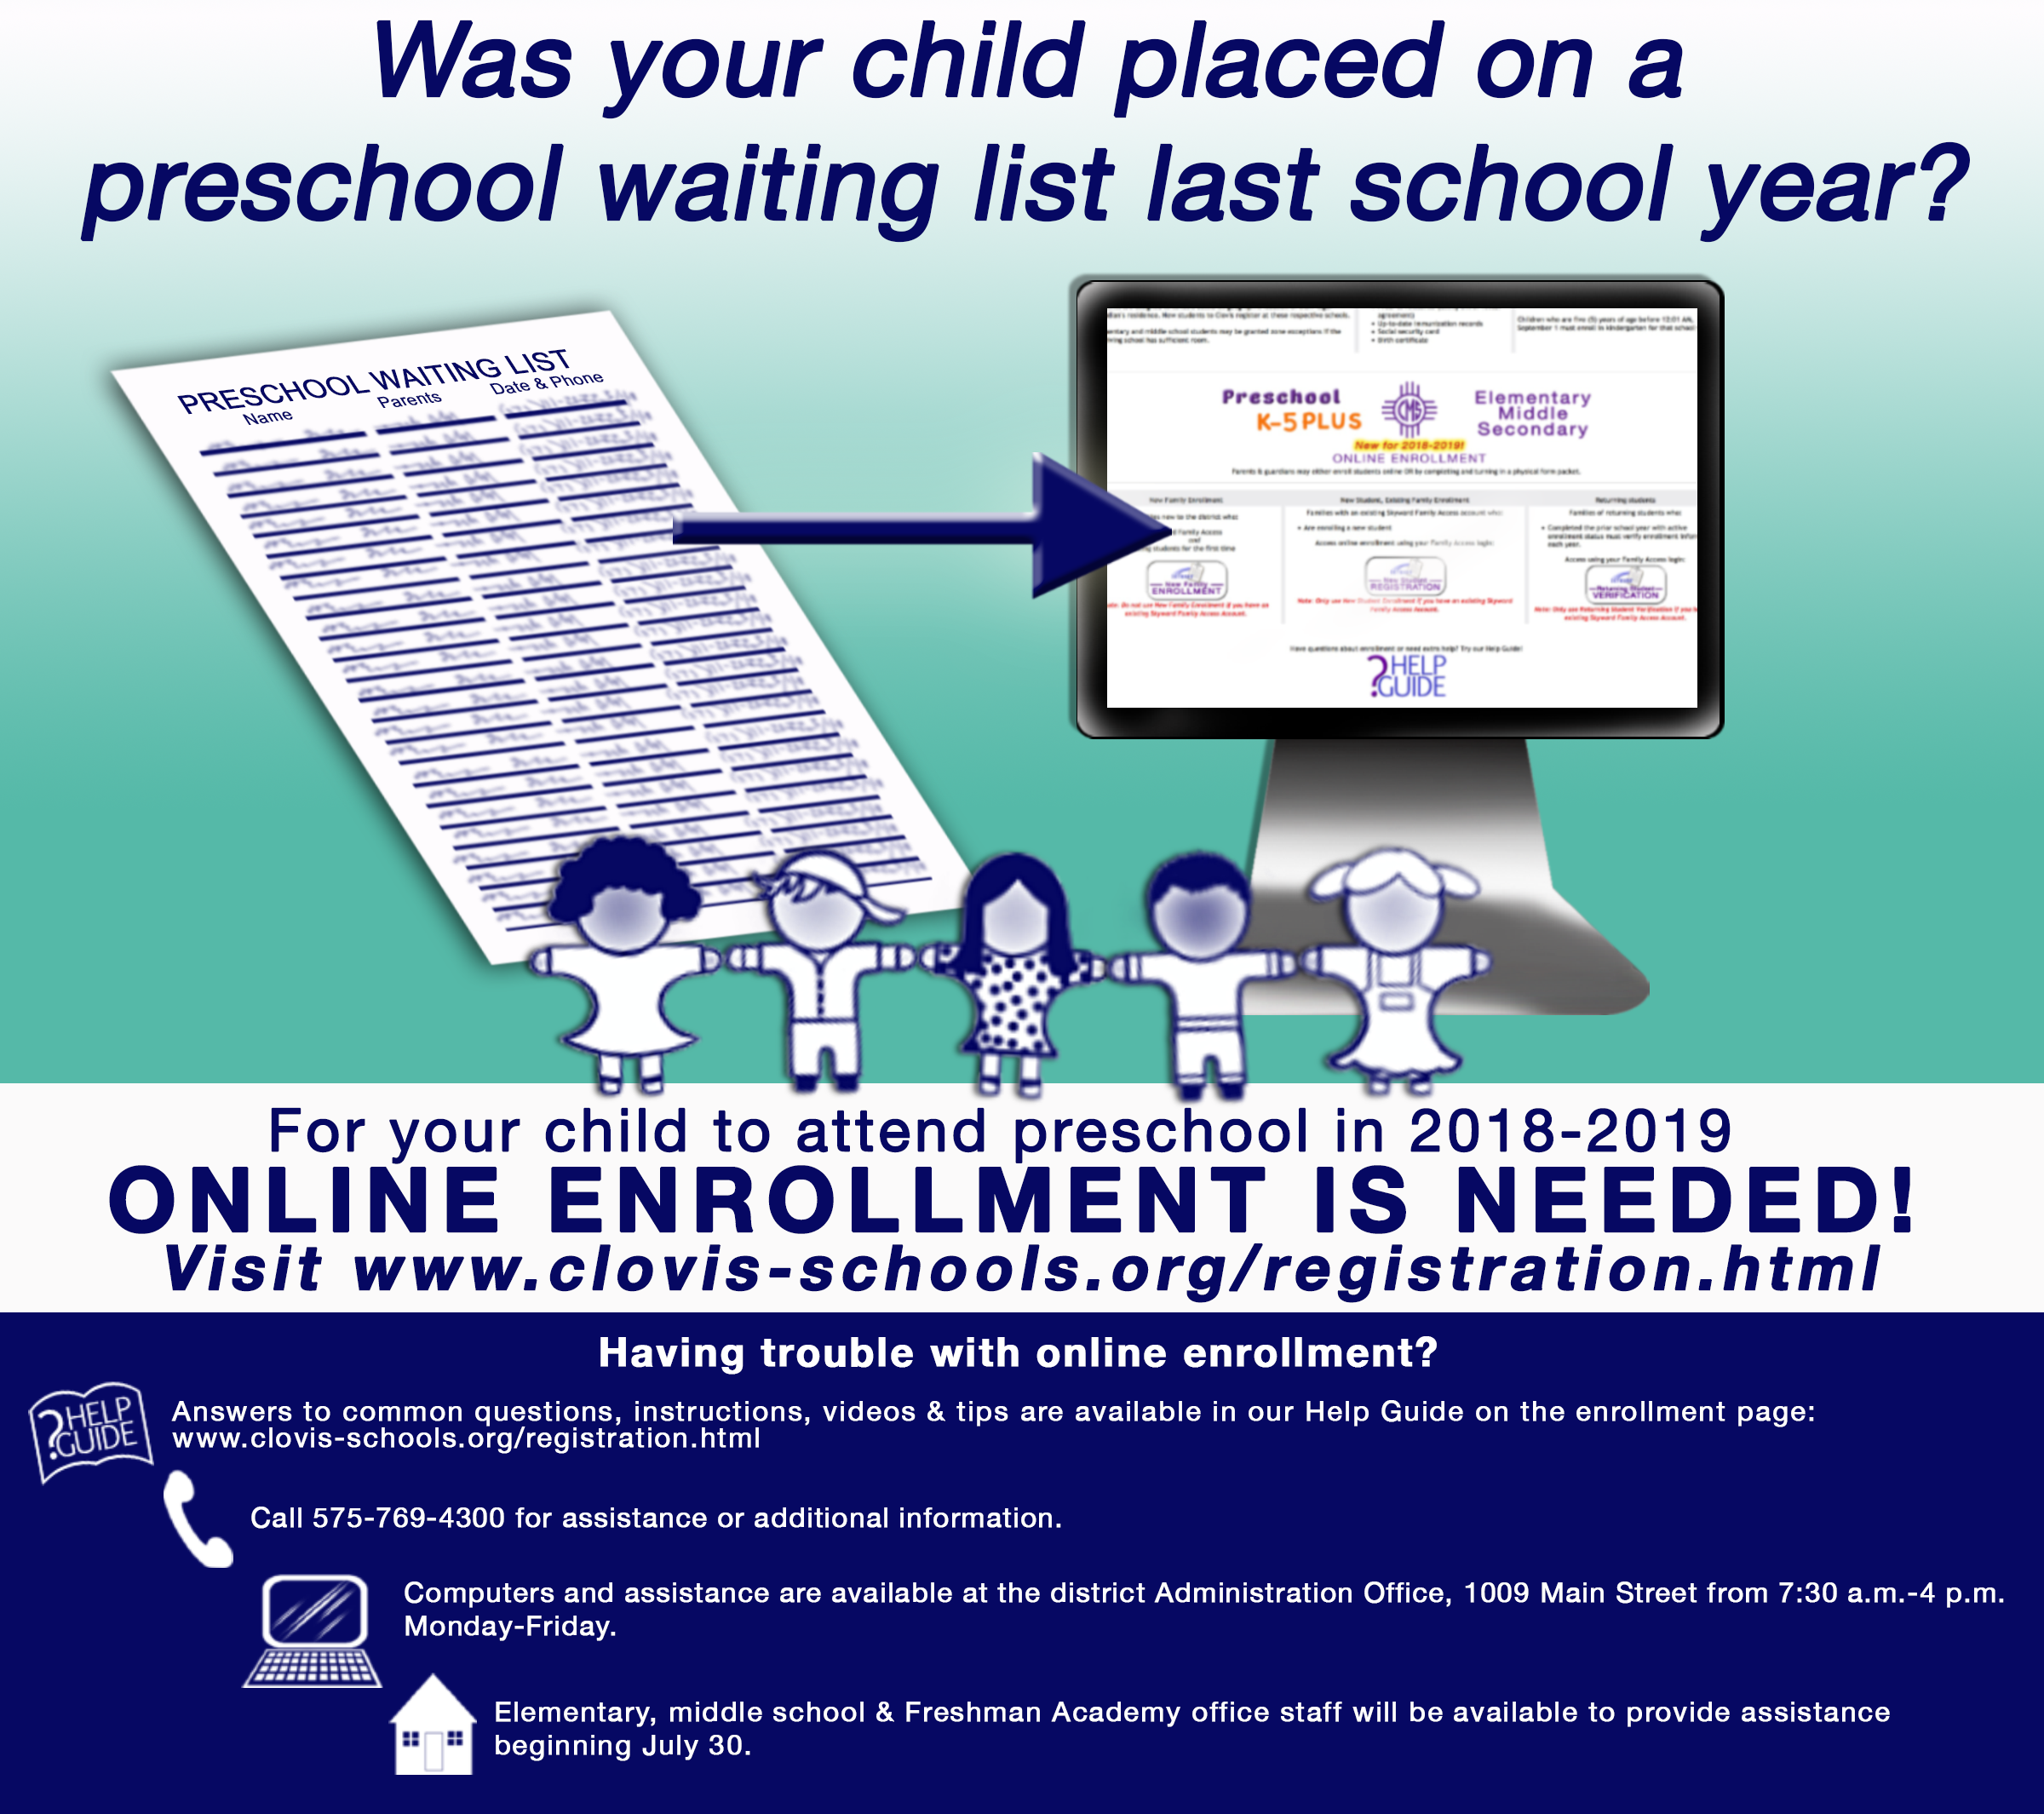 Home clovis municipal school district image with text announcing online enrollment needed for prek students on waiting lists fandeluxe